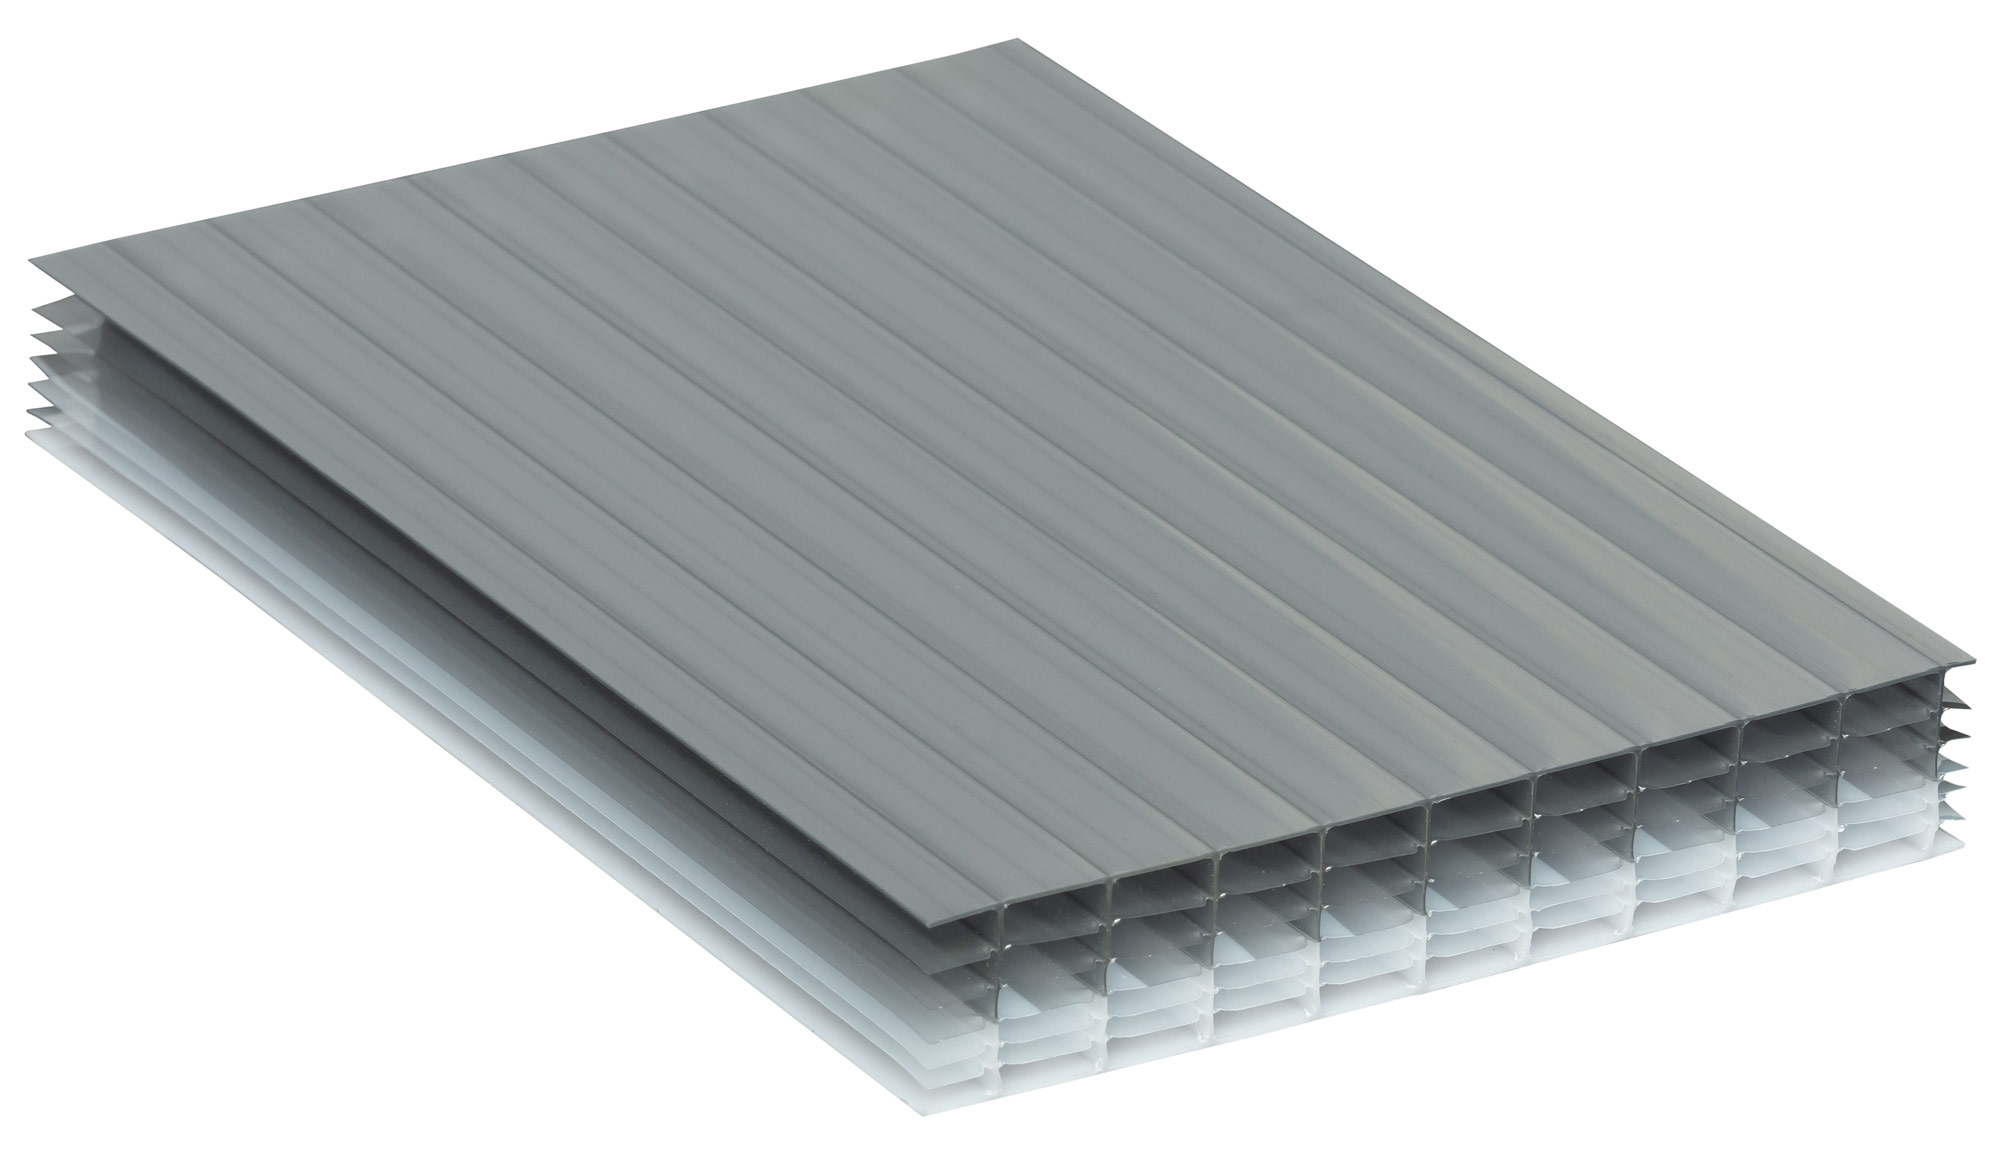 Heatguard Opal Tint Polycarbonate Multiwall Roofing Sheets